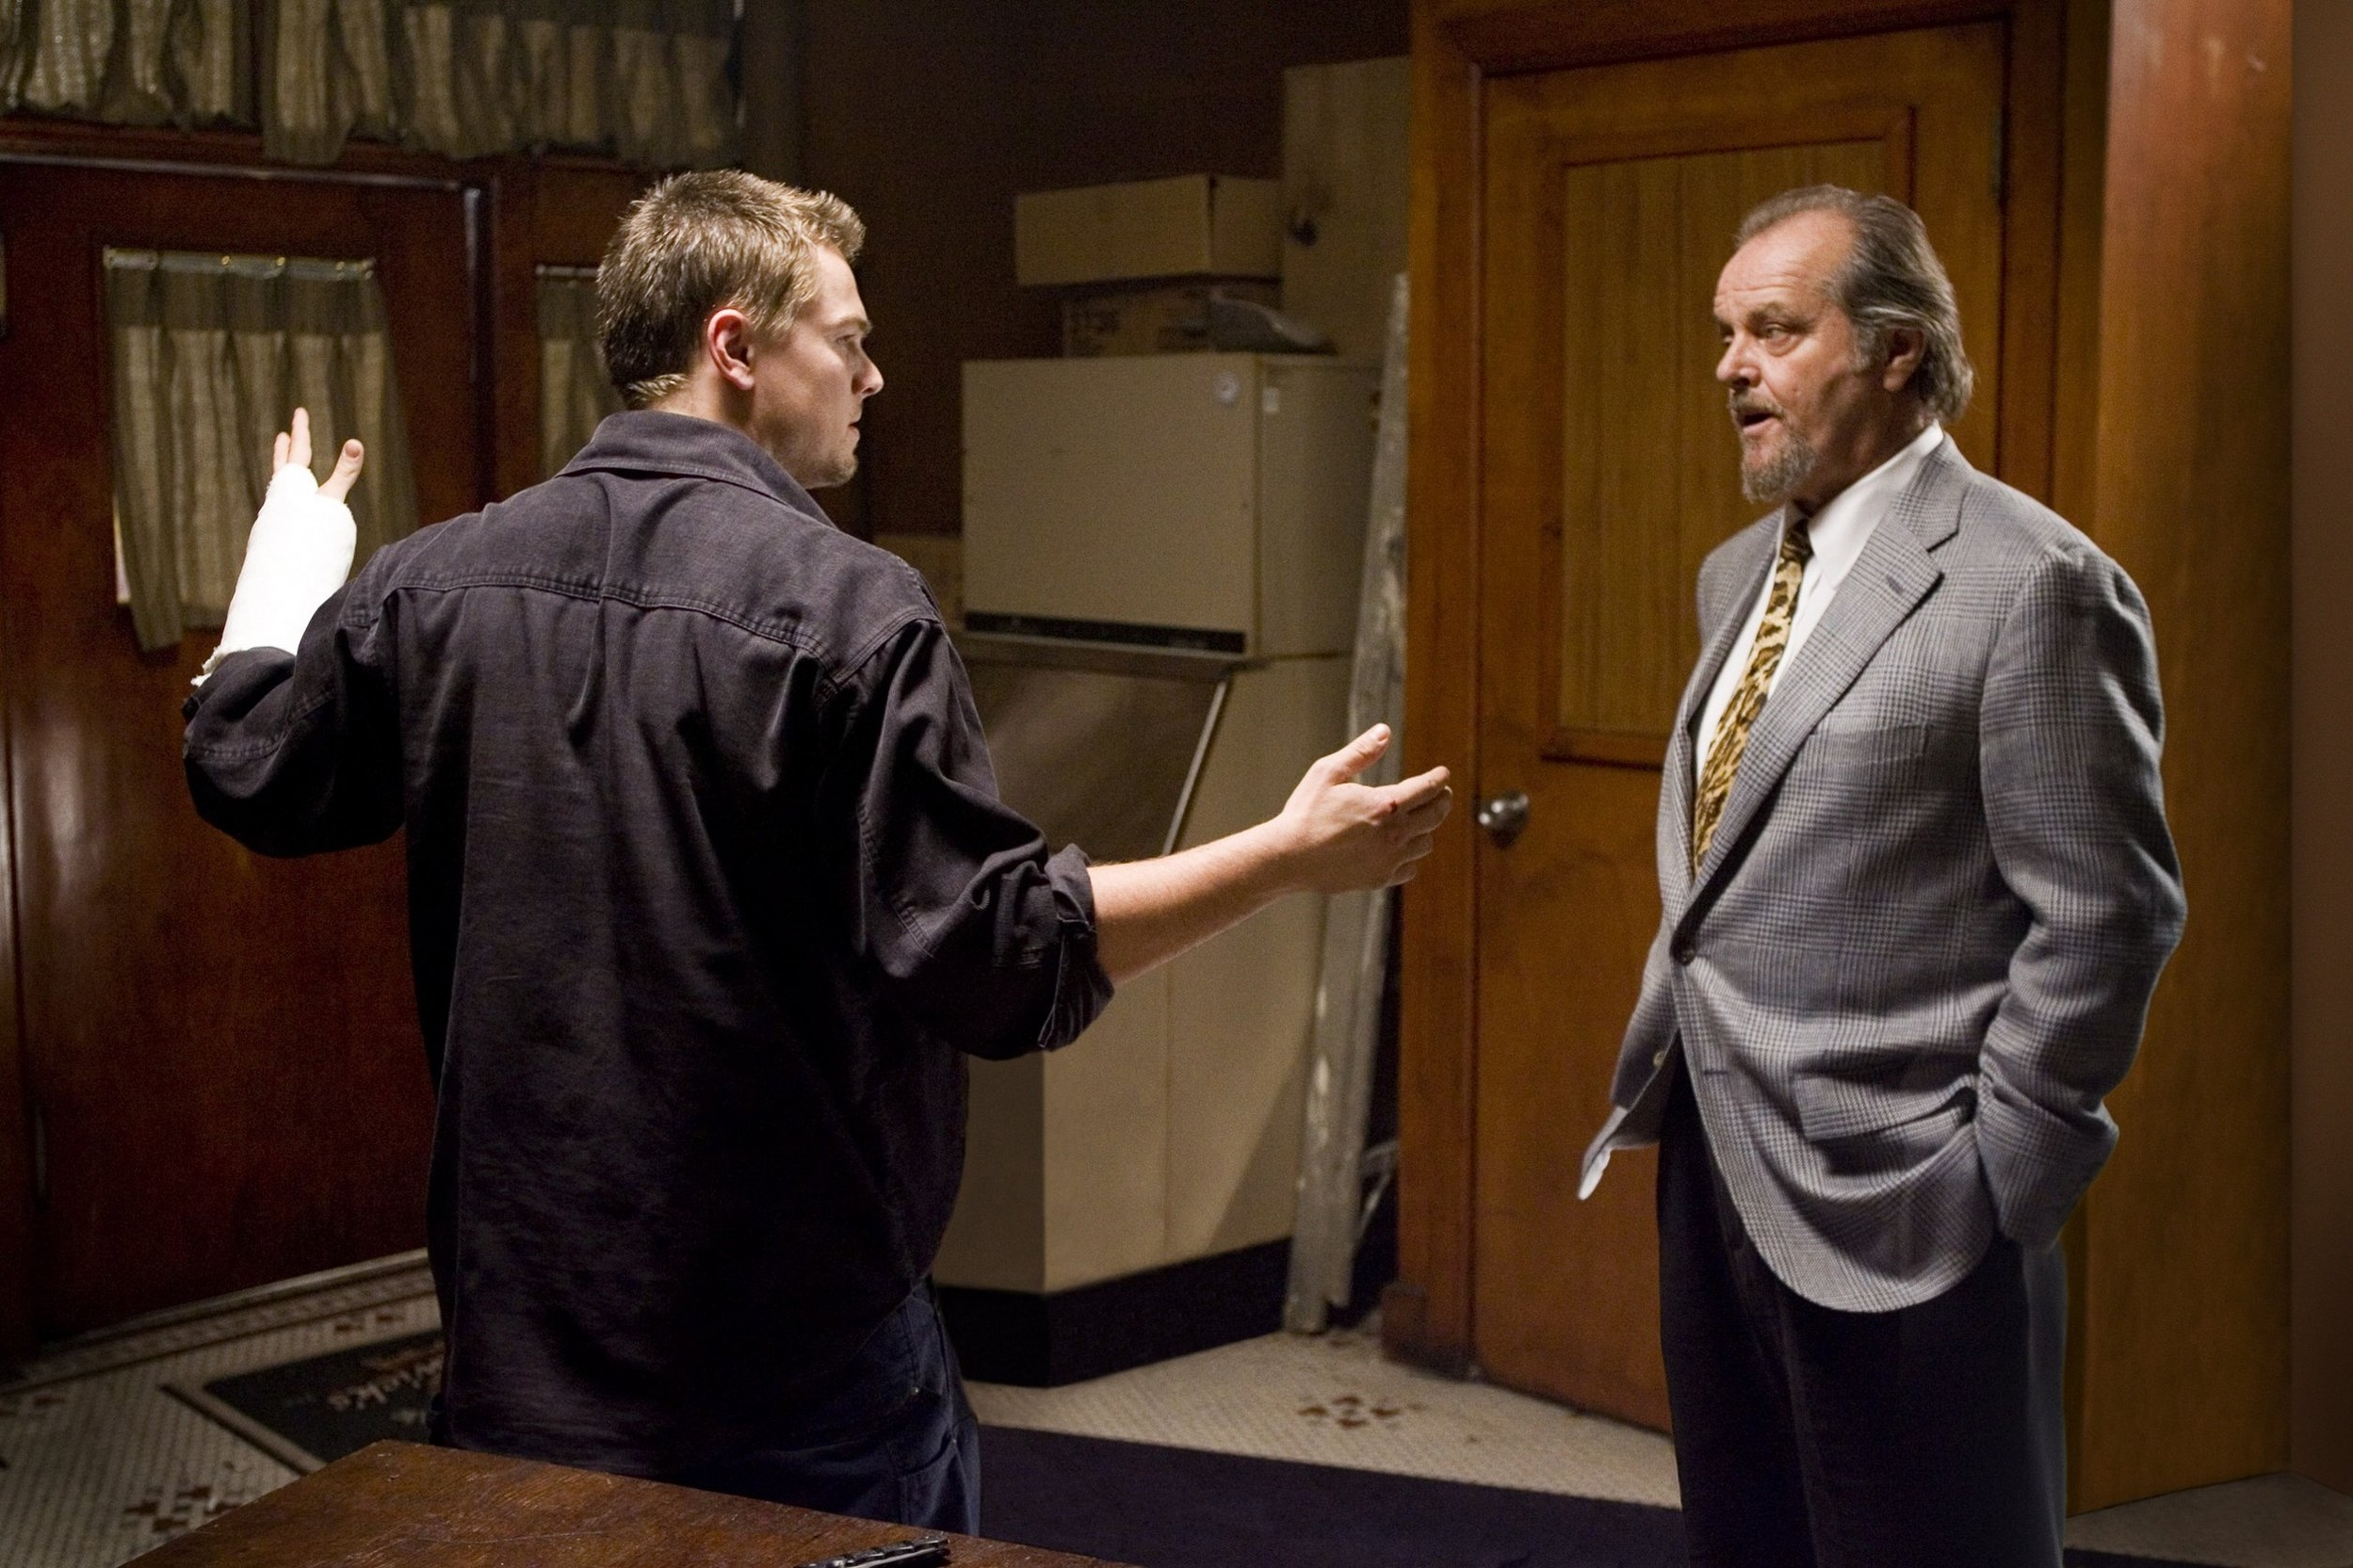 The Departed (2006) - Directed by: Martin ScorseseWritten by: William Monahan